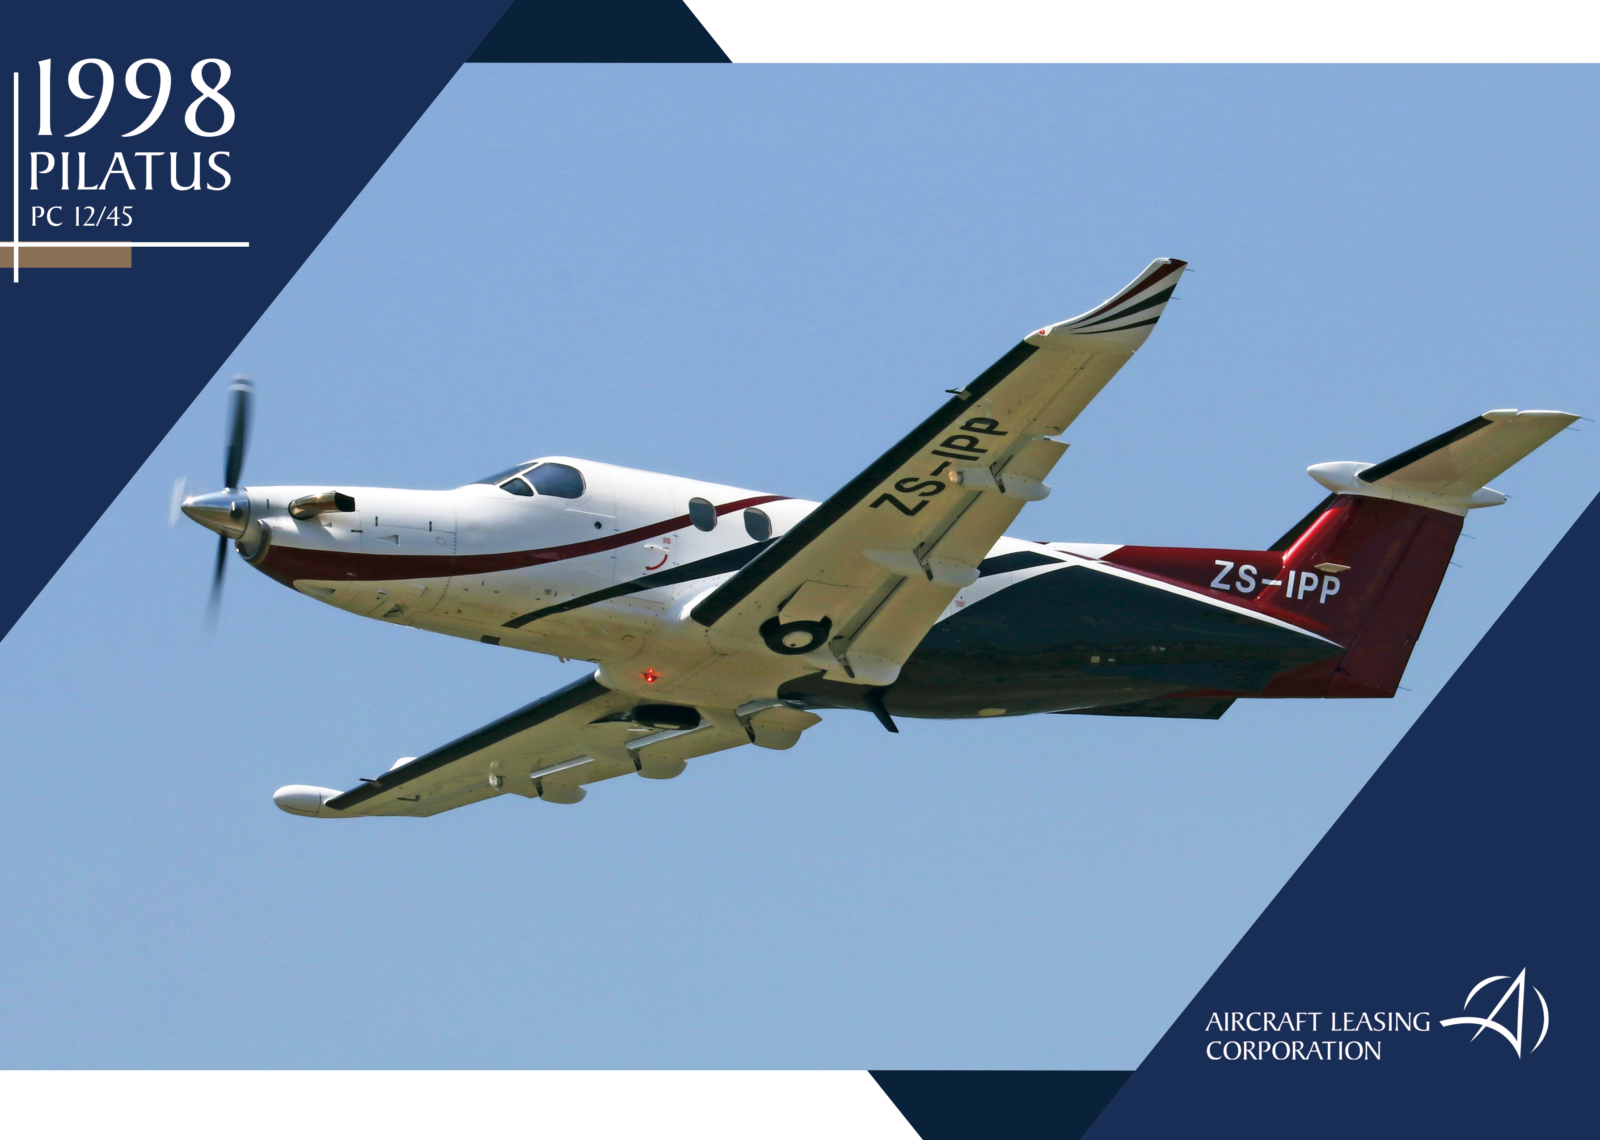 1998 Pilatus PC 12/45, Aircraft Leasing Corporation